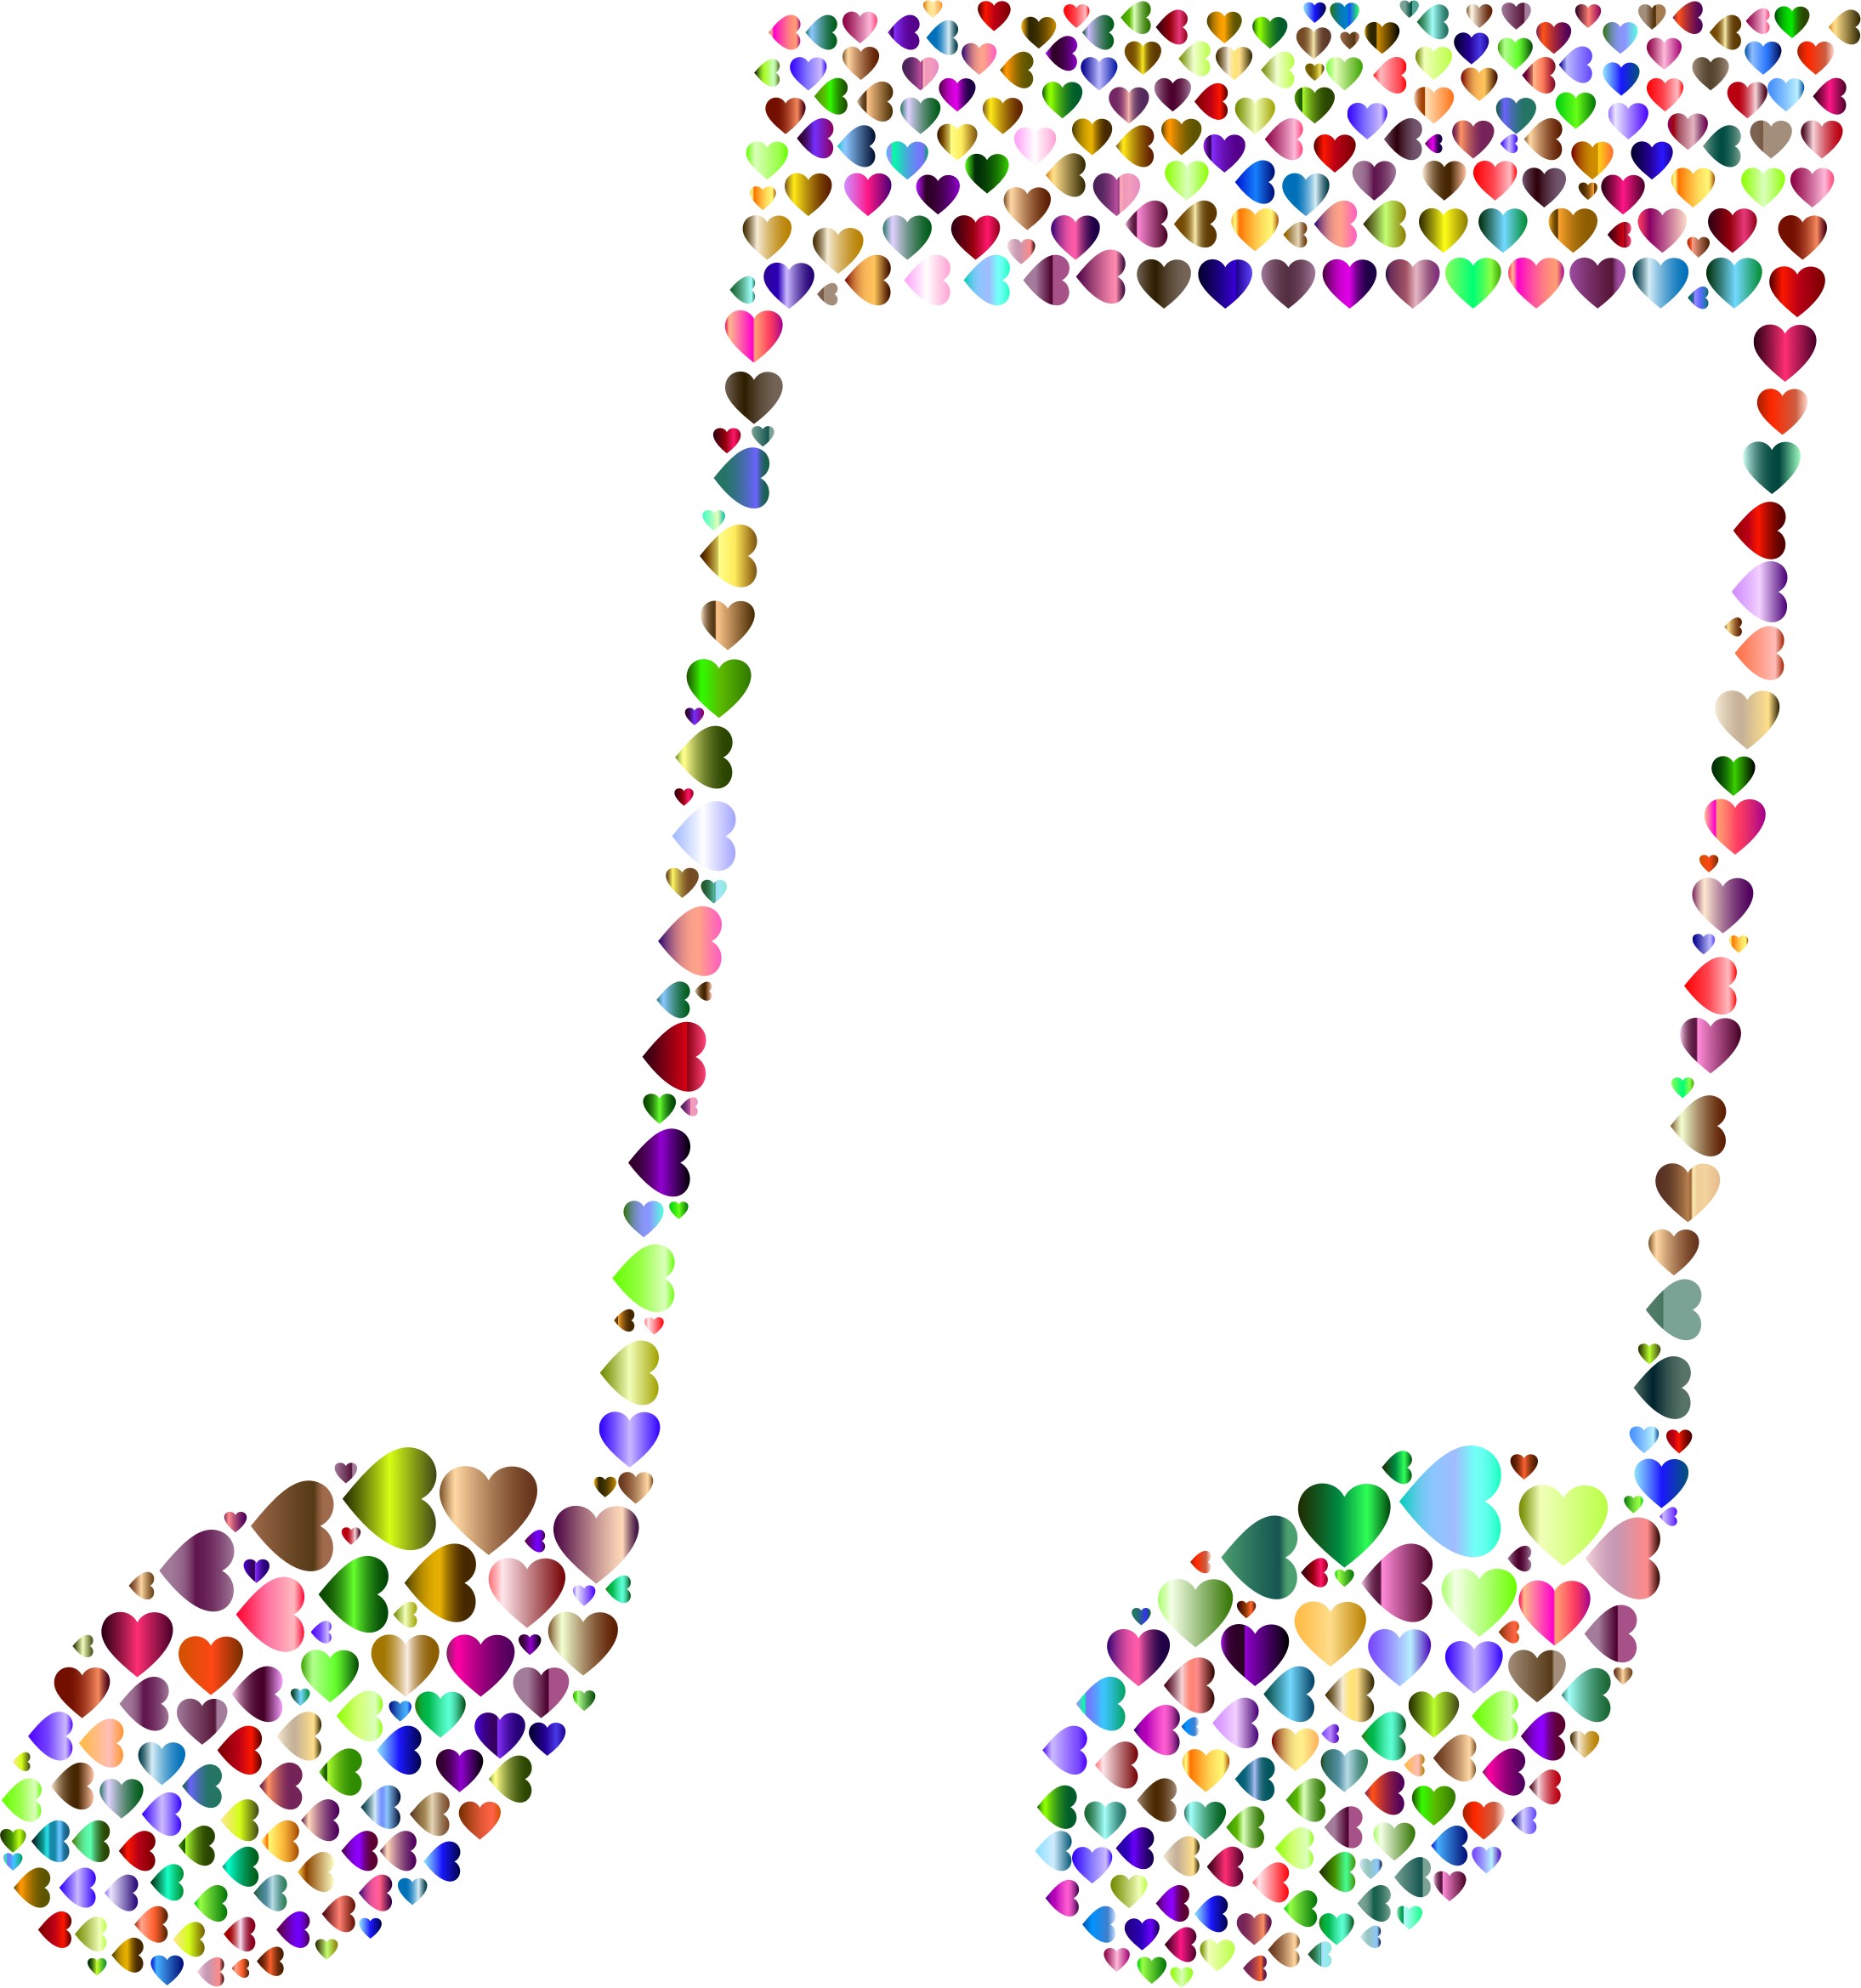 Music note clipart heart. Hearts chromatic big image